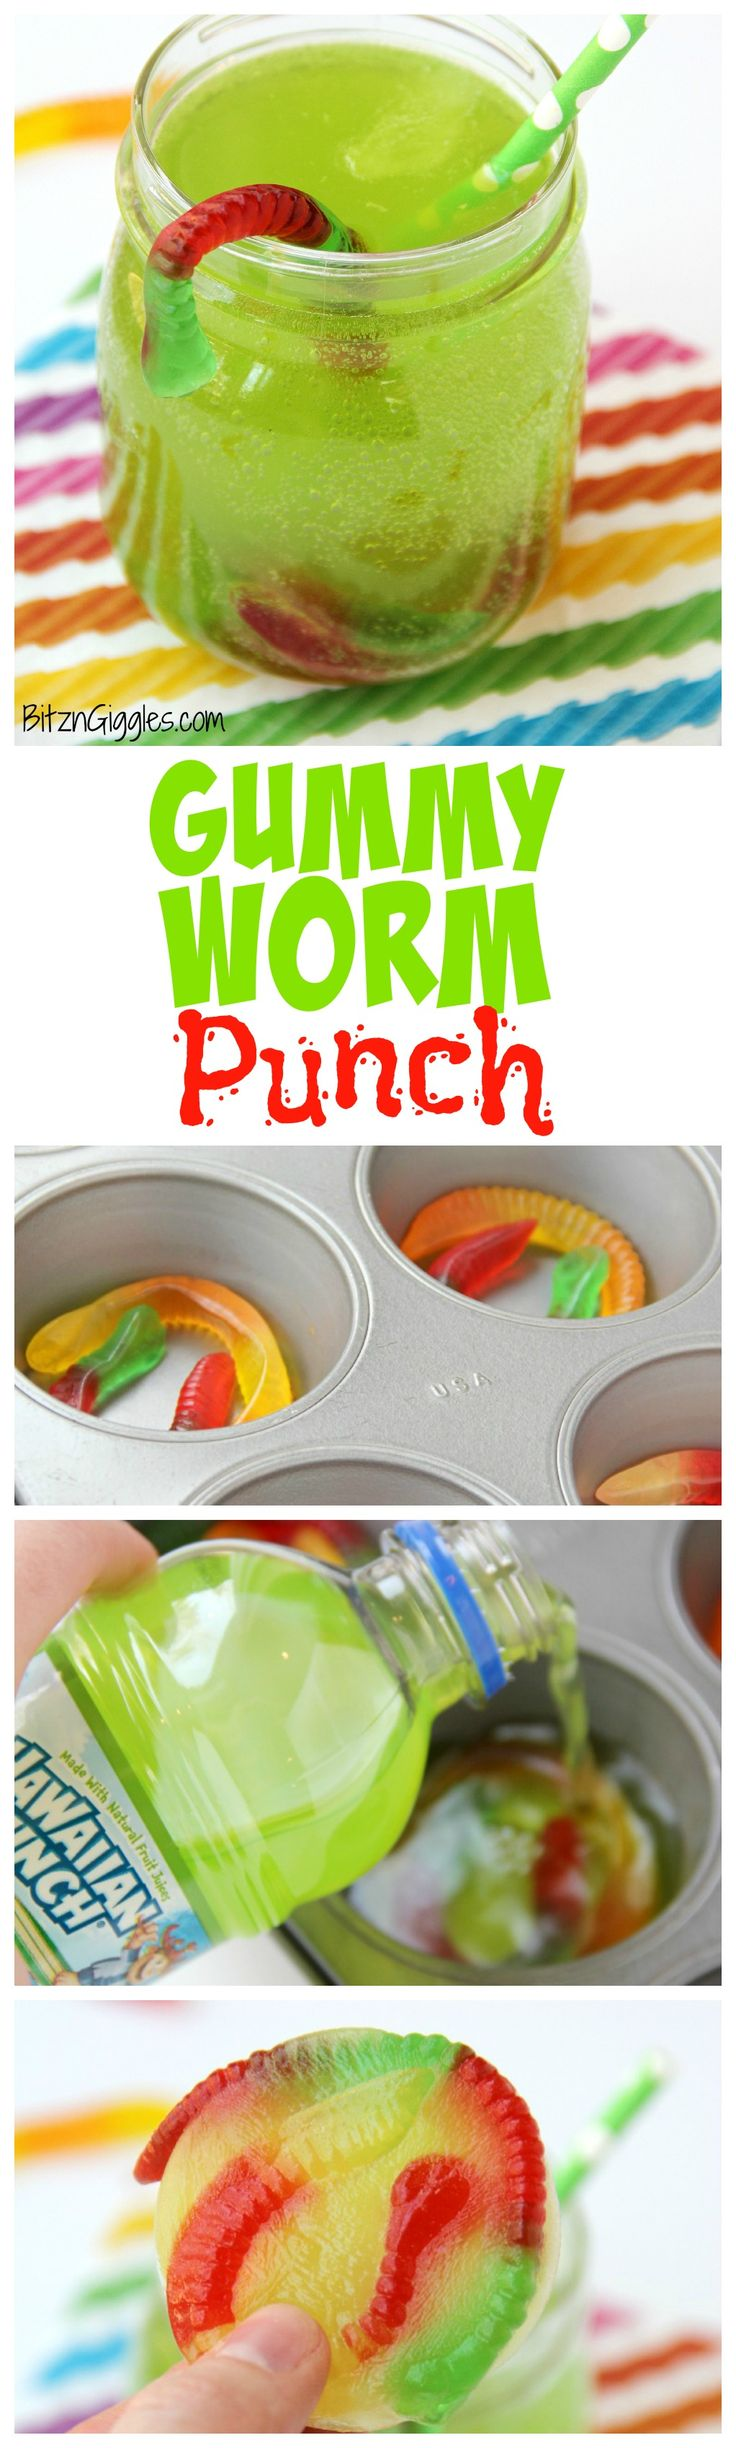 gummy worm punch - Great Halloween Drinks